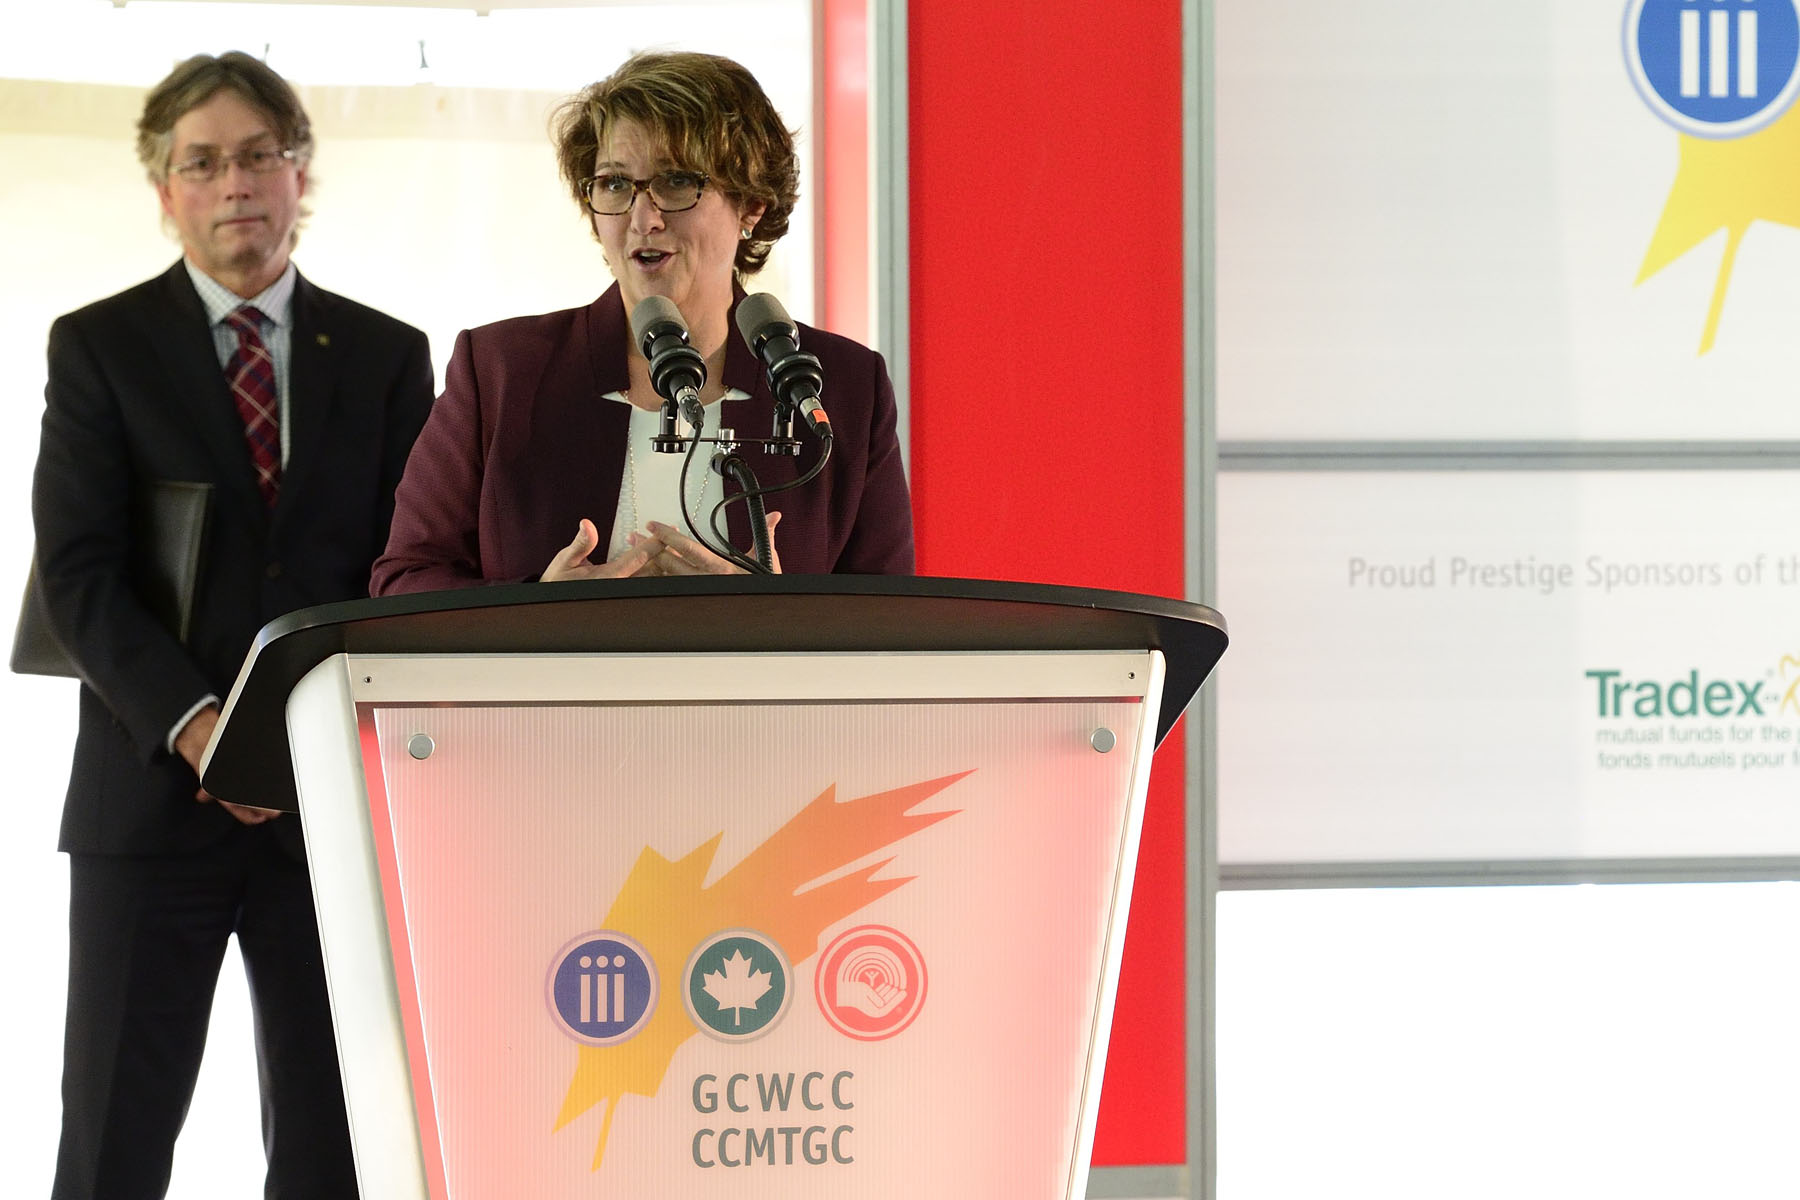 Ms. Marie Lemay, National Co-Chair of the 2016 GCWCC and Deputy Minister for Public Services and Procurement, also said a few words.